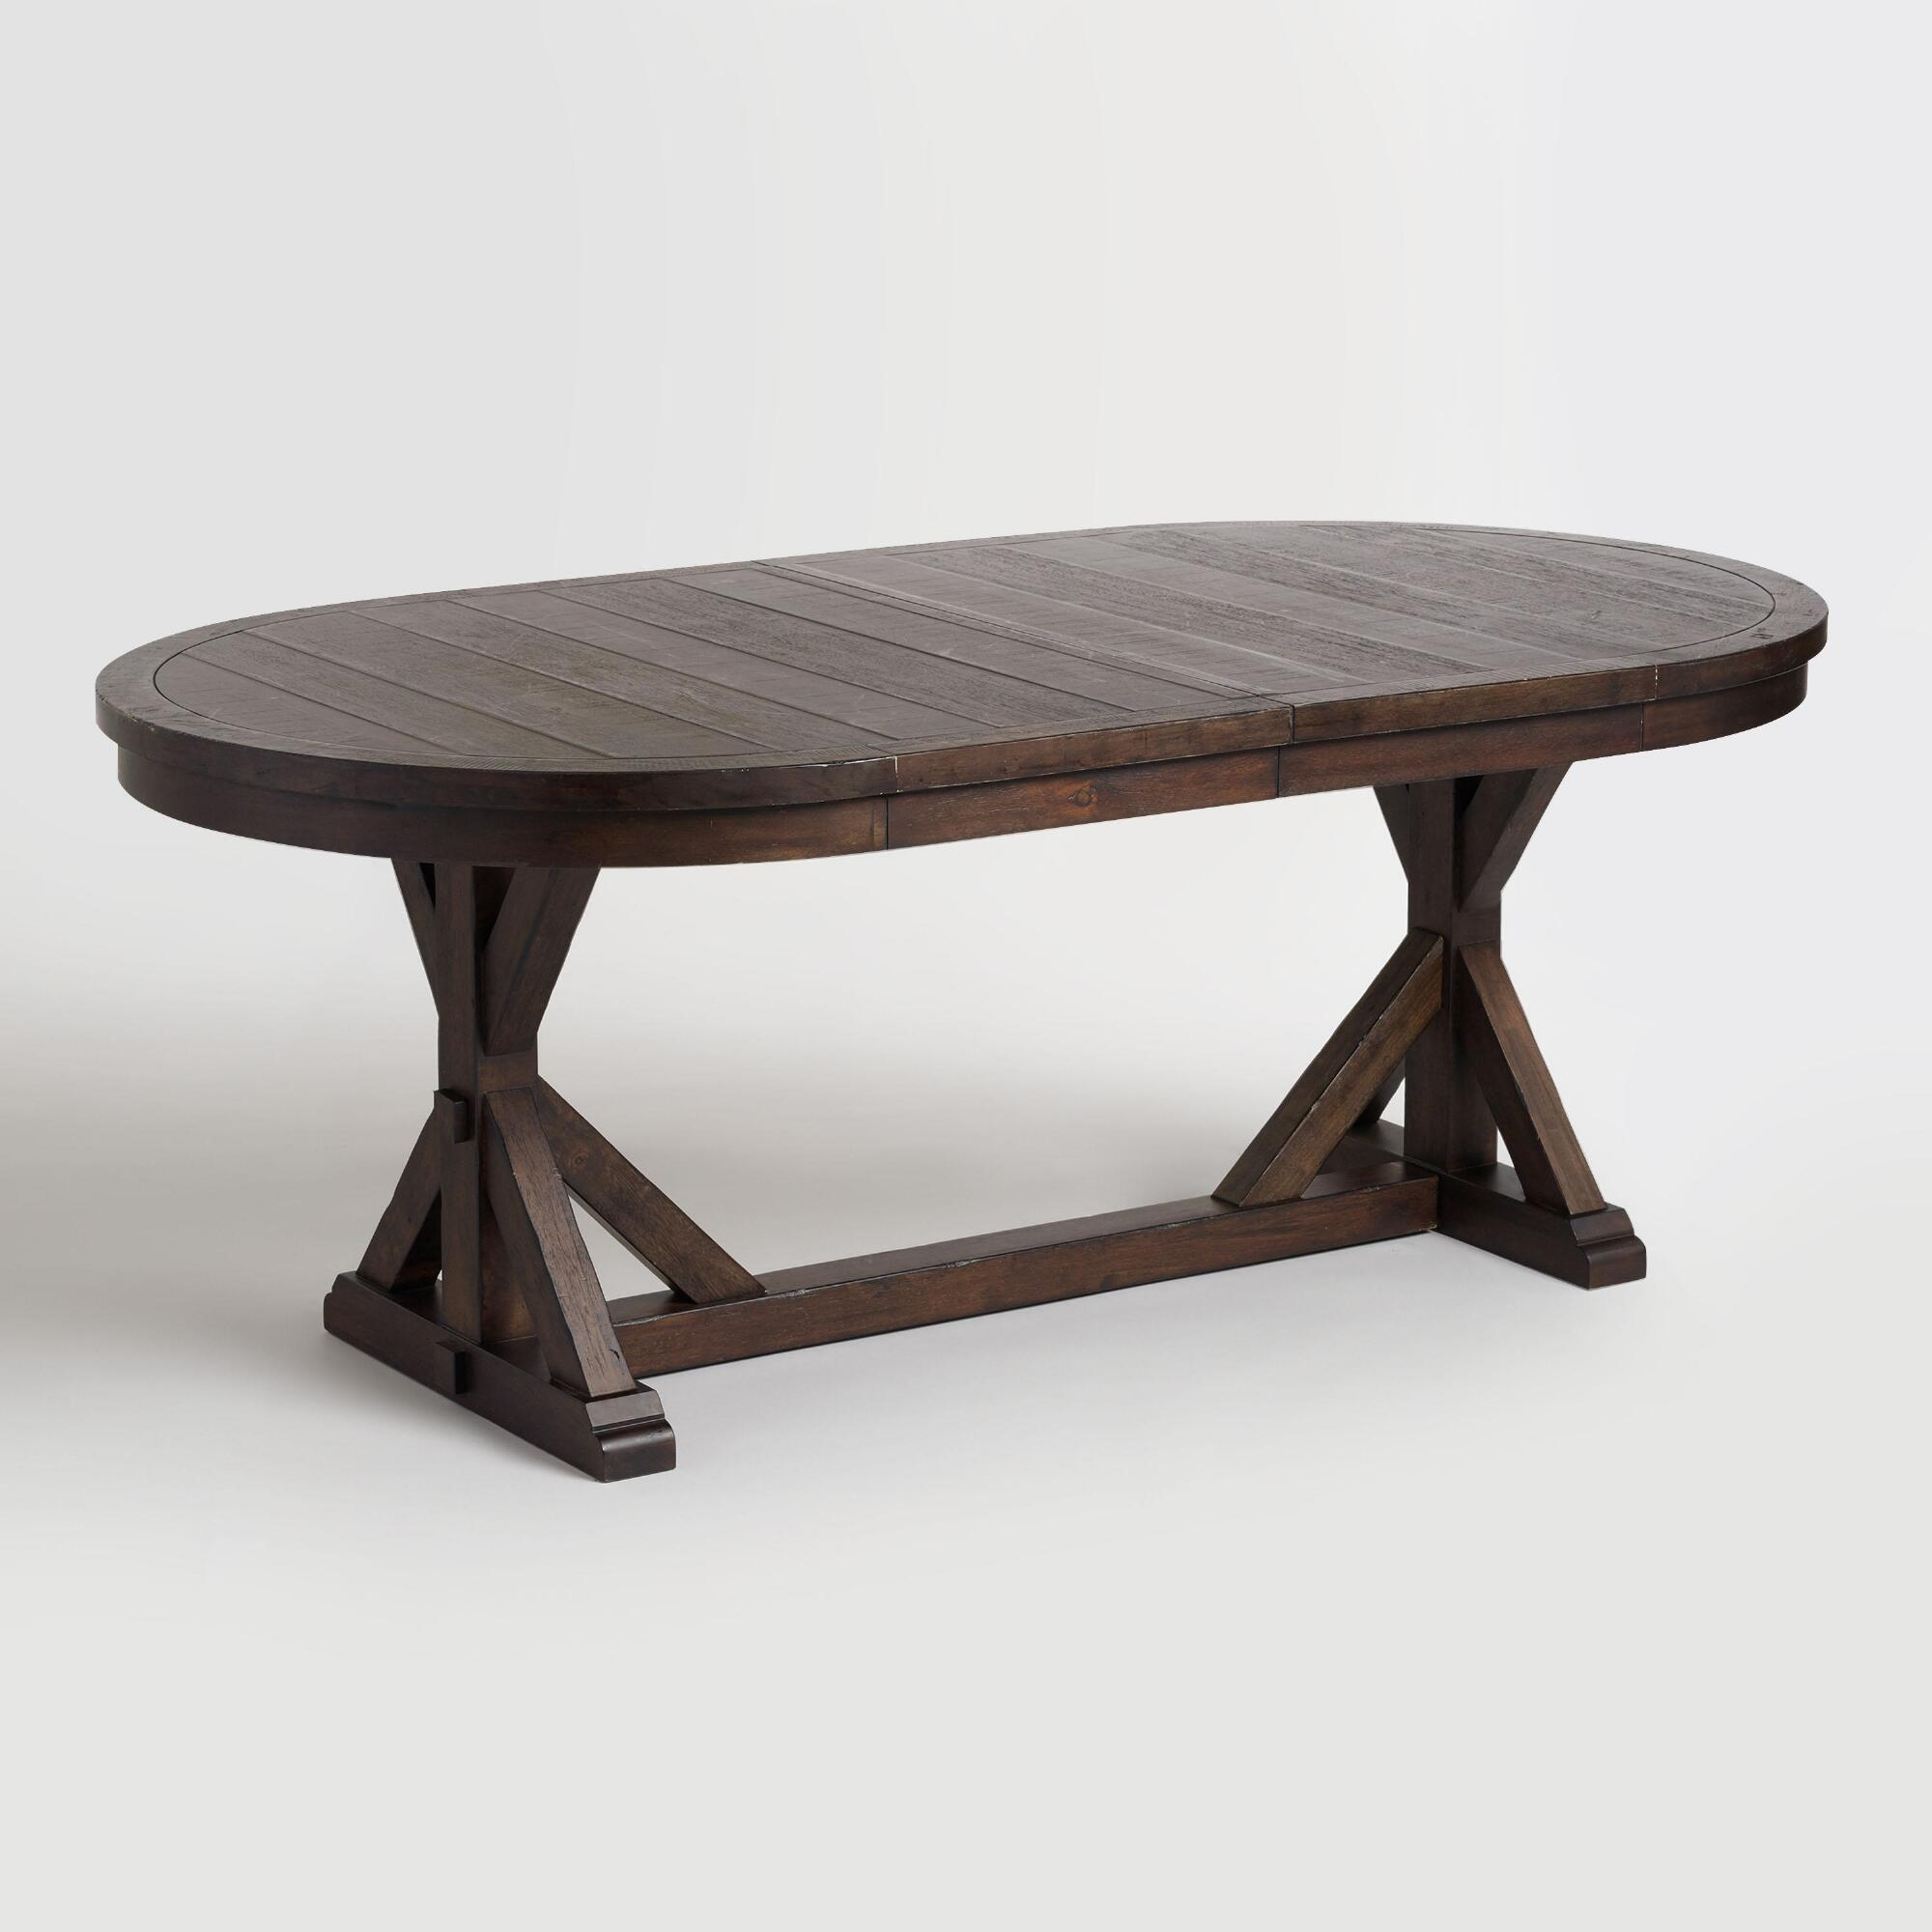 Rustic brown oval wood brooklynn extension dining table for Dinner table wood